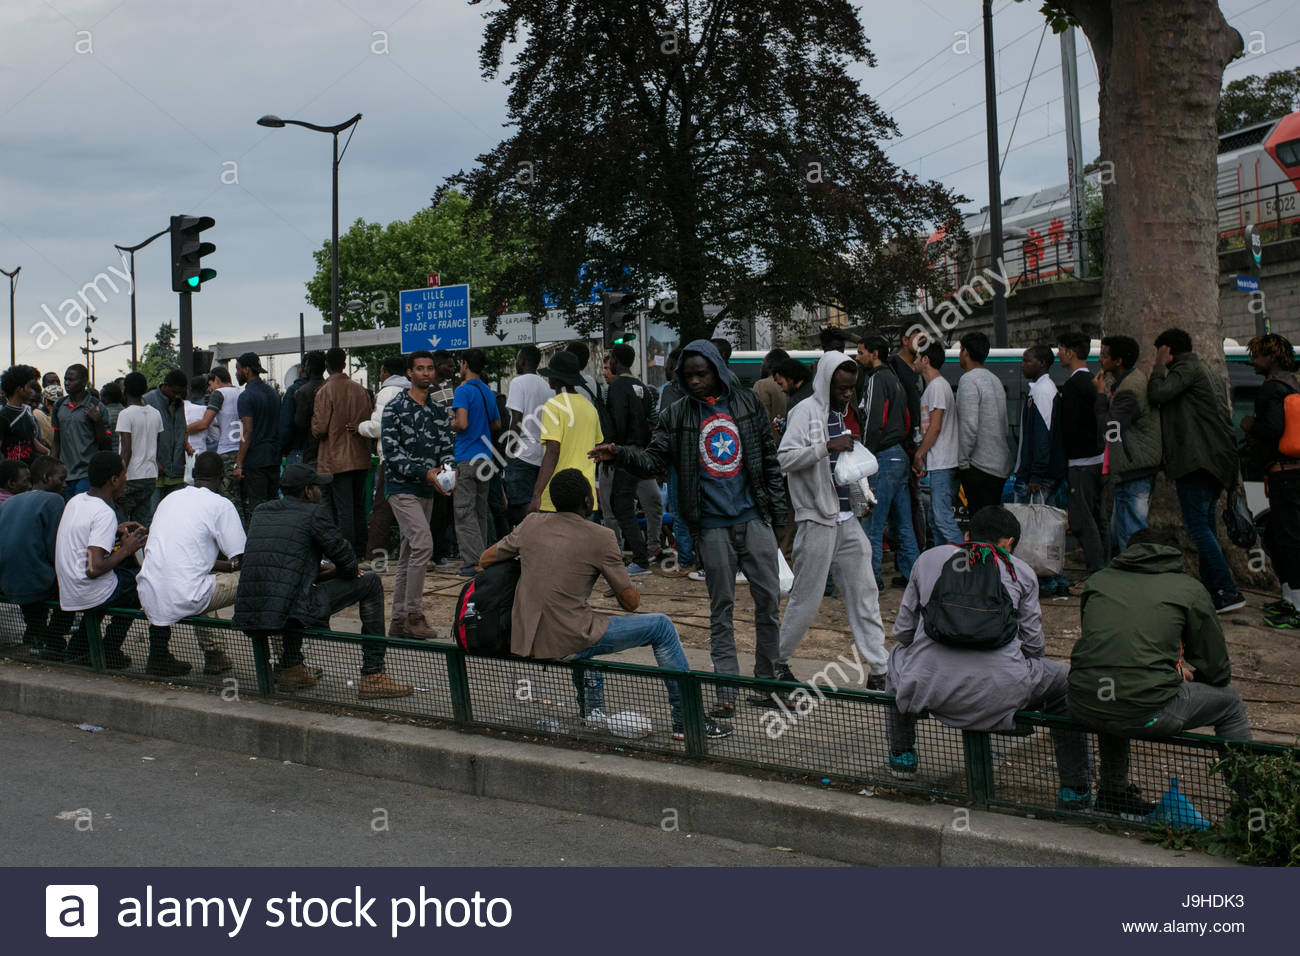 Paris  France  2nd June  2017  People take part in an event at which     People take part in an event at which volunteers  migrants and refugees  gather to prepare and eat dinner together in the Porte de la Chapelle area  of